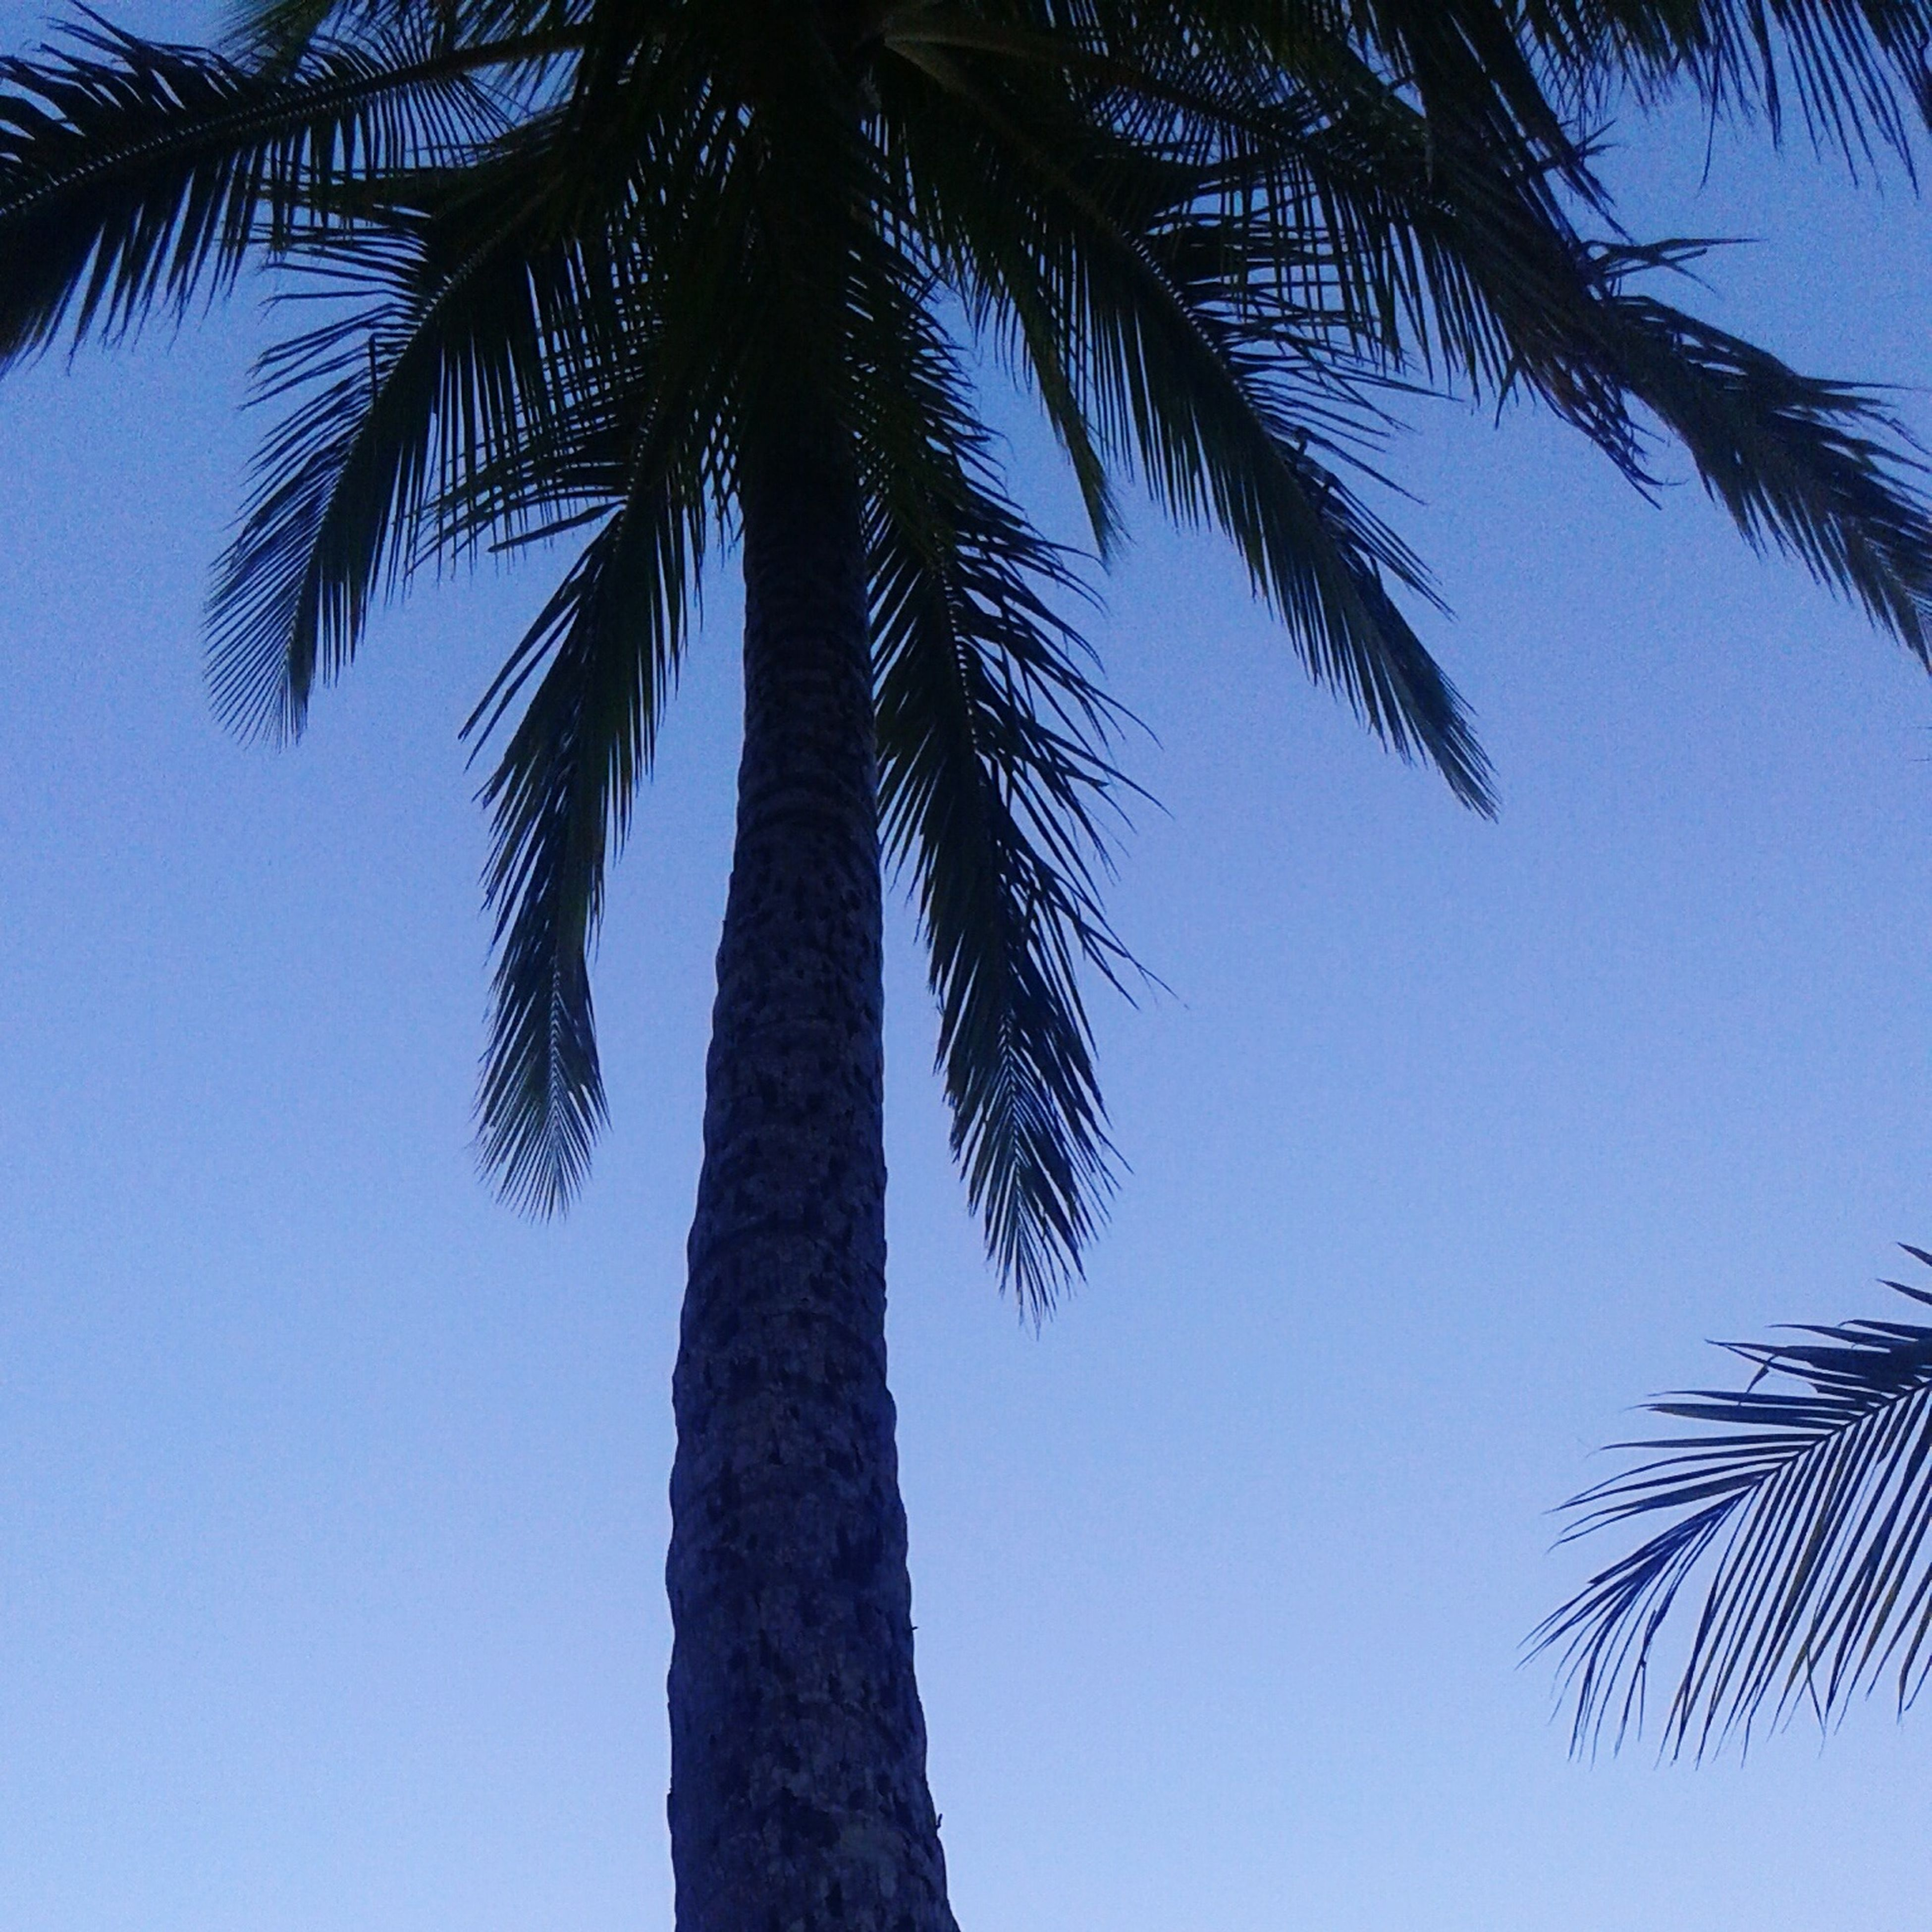 low angle view, palm tree, tree, clear sky, tree trunk, growth, tranquility, nature, blue, branch, beauty in nature, tall - high, coconut palm tree, palm leaf, sky, day, scenics, outdoors, tranquil scene, no people